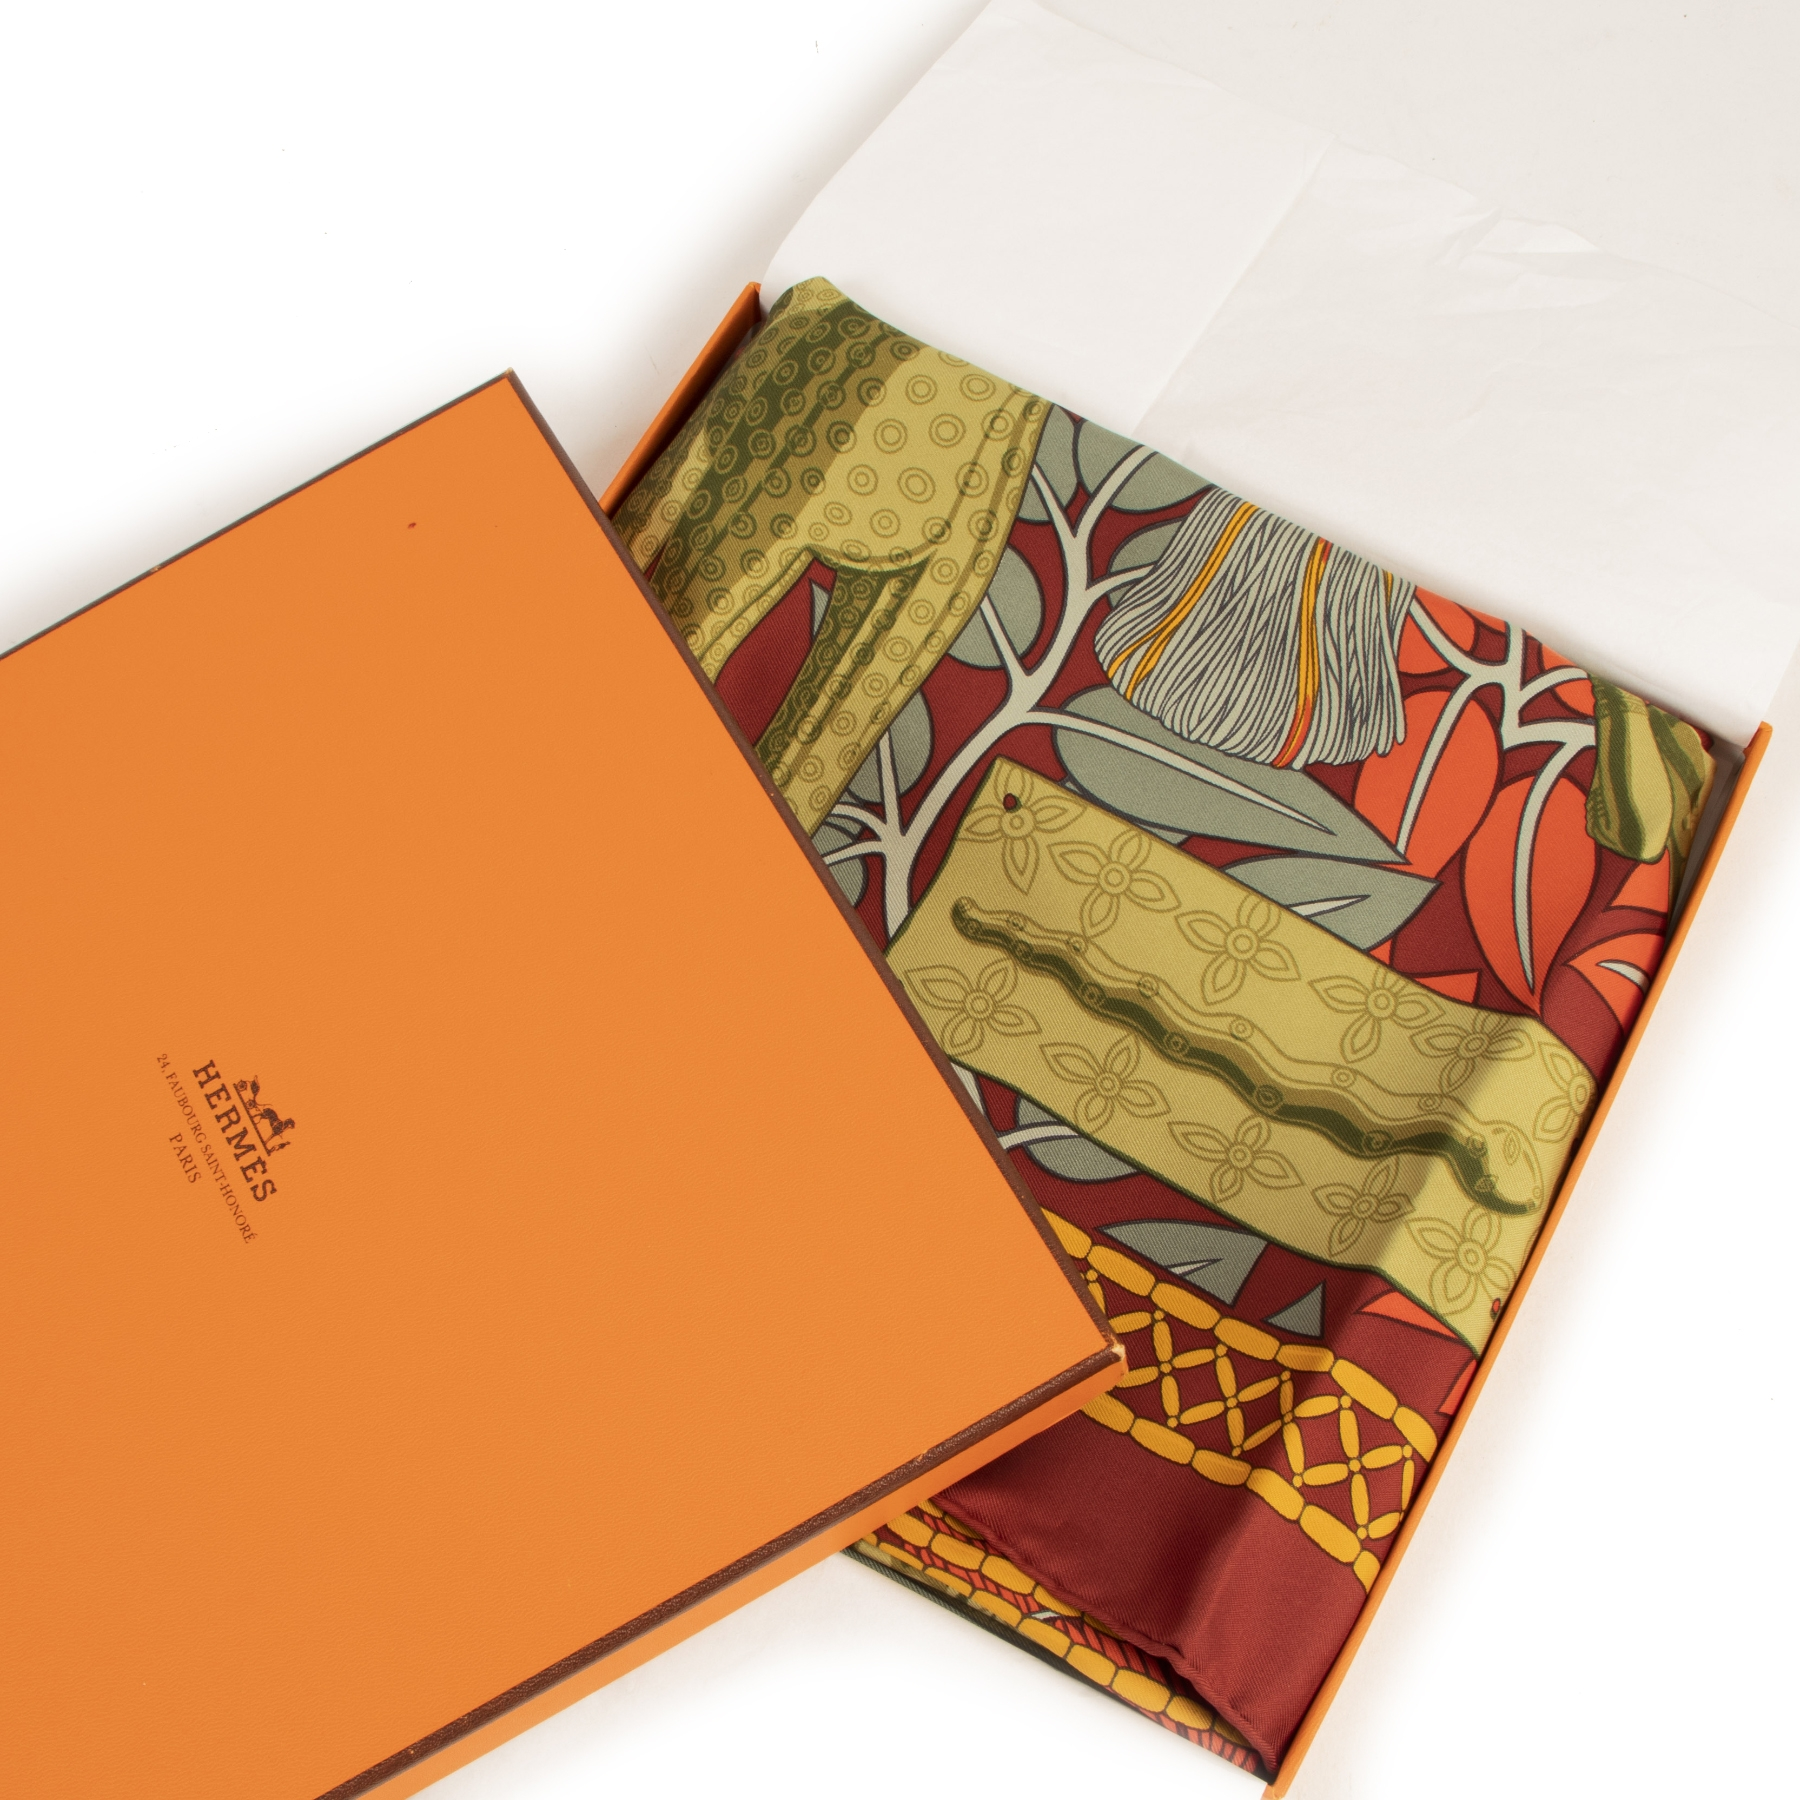 Authentic secondhand Hermès Carré 'Trésor Royal du Bénin' Silk Scarf designer accessories bags luxury vintage webshop designer high end brands safe secure online shopping fashion